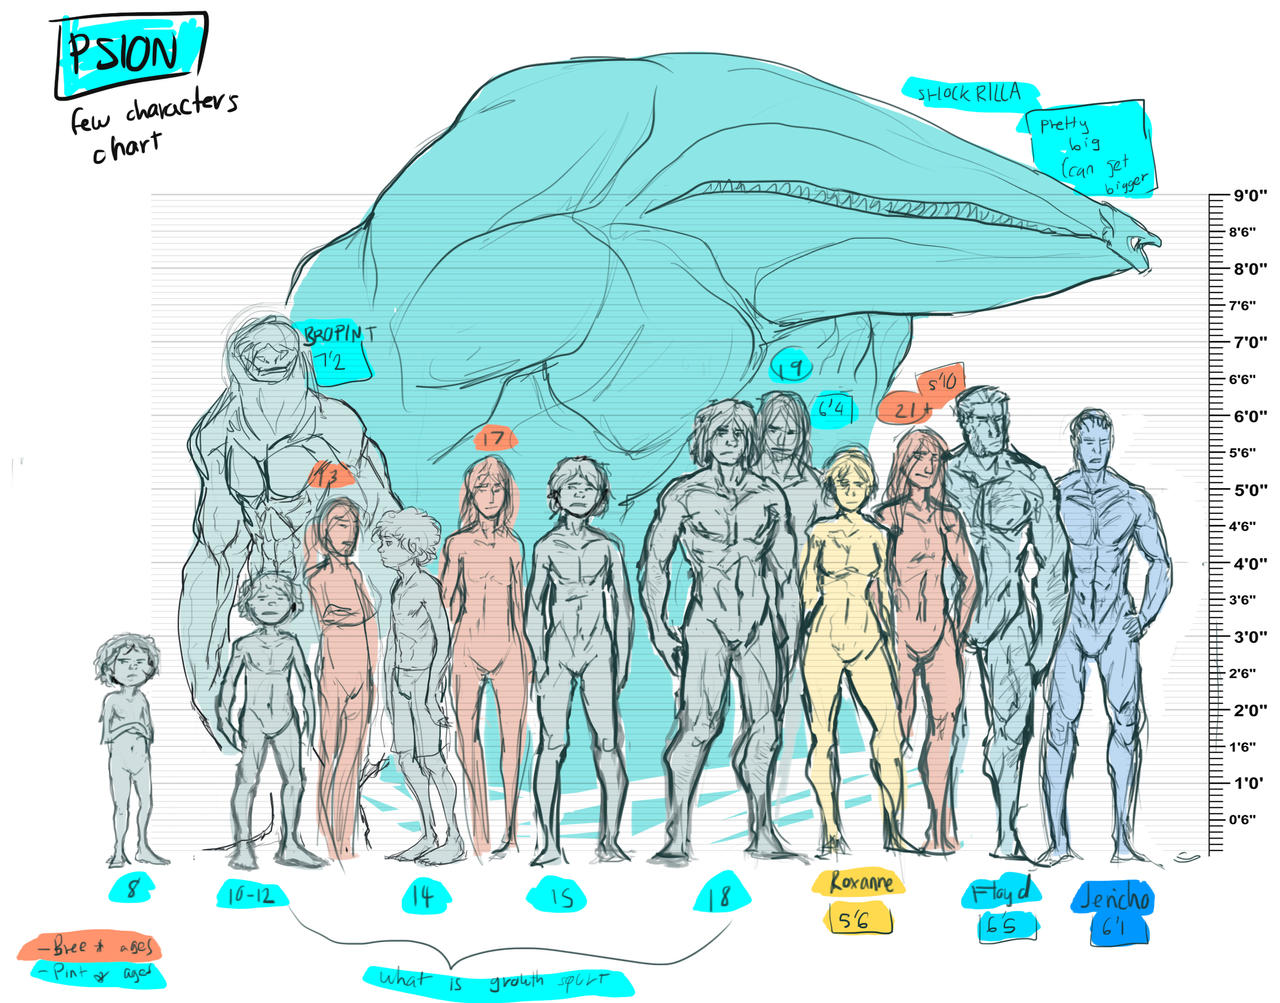 Calendar Typography Height : Another character height chart by silvermender on deviantart